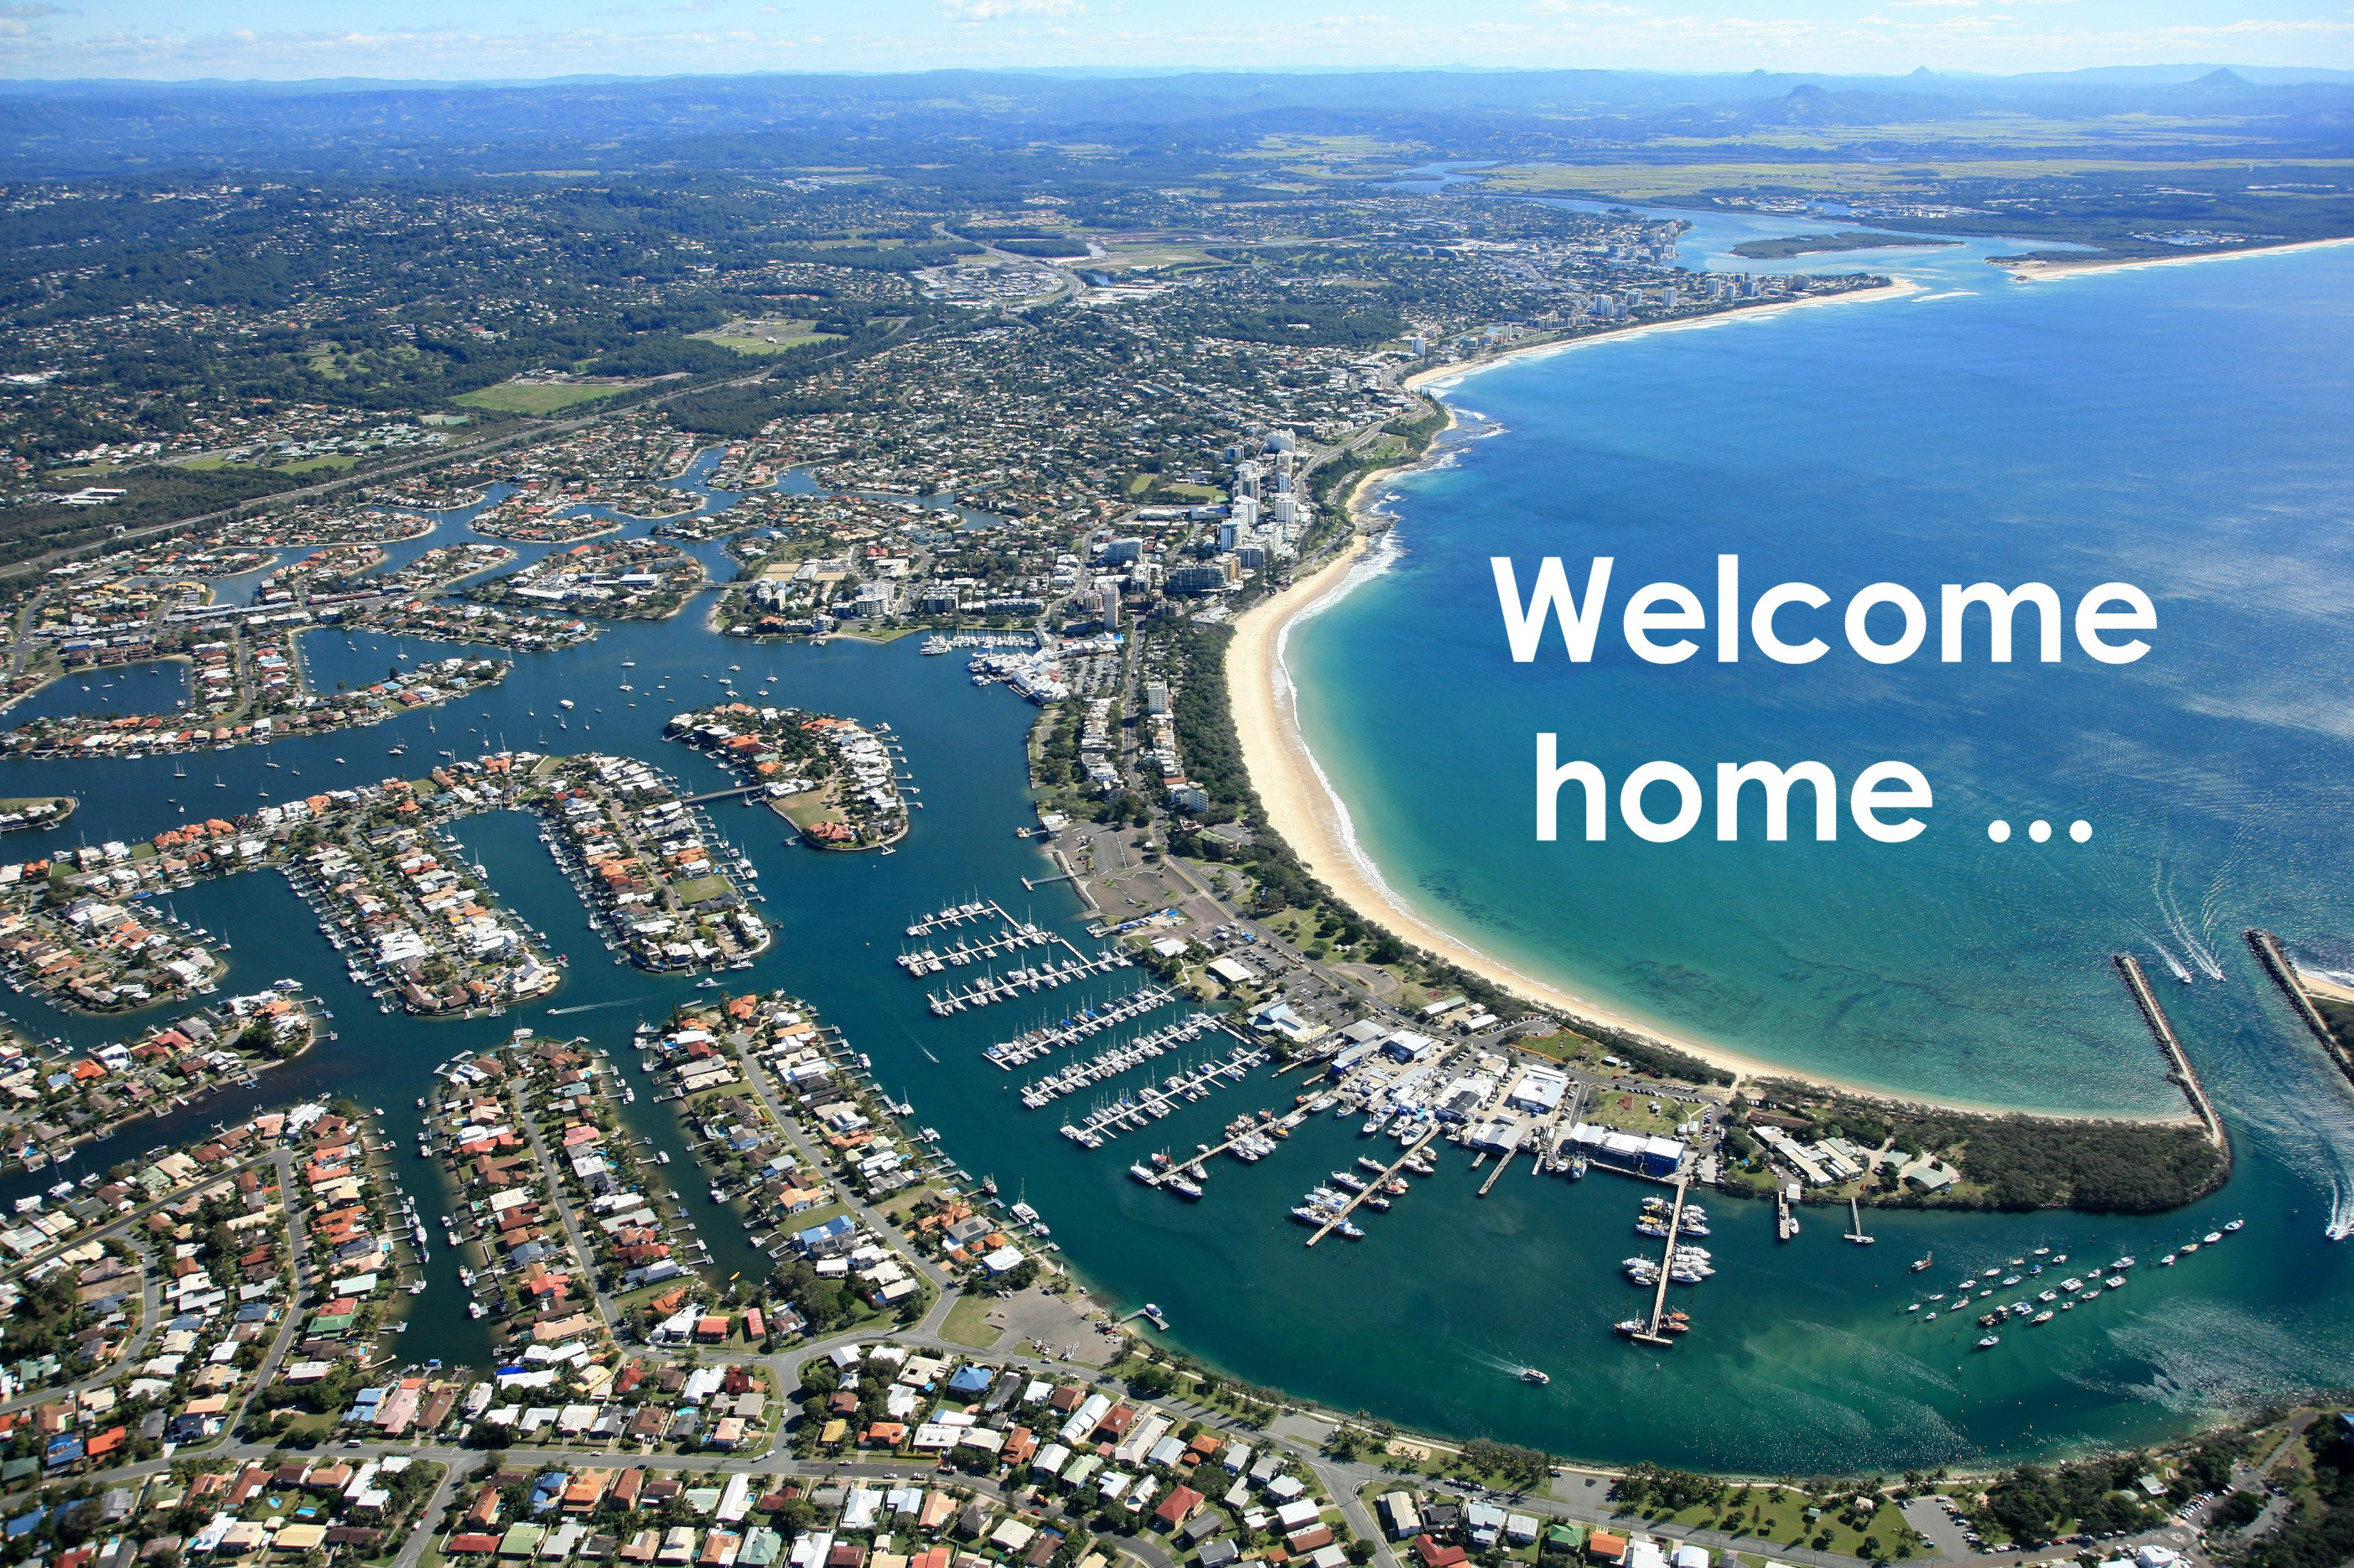 Welcome home, aerial view of Sunshine Coast